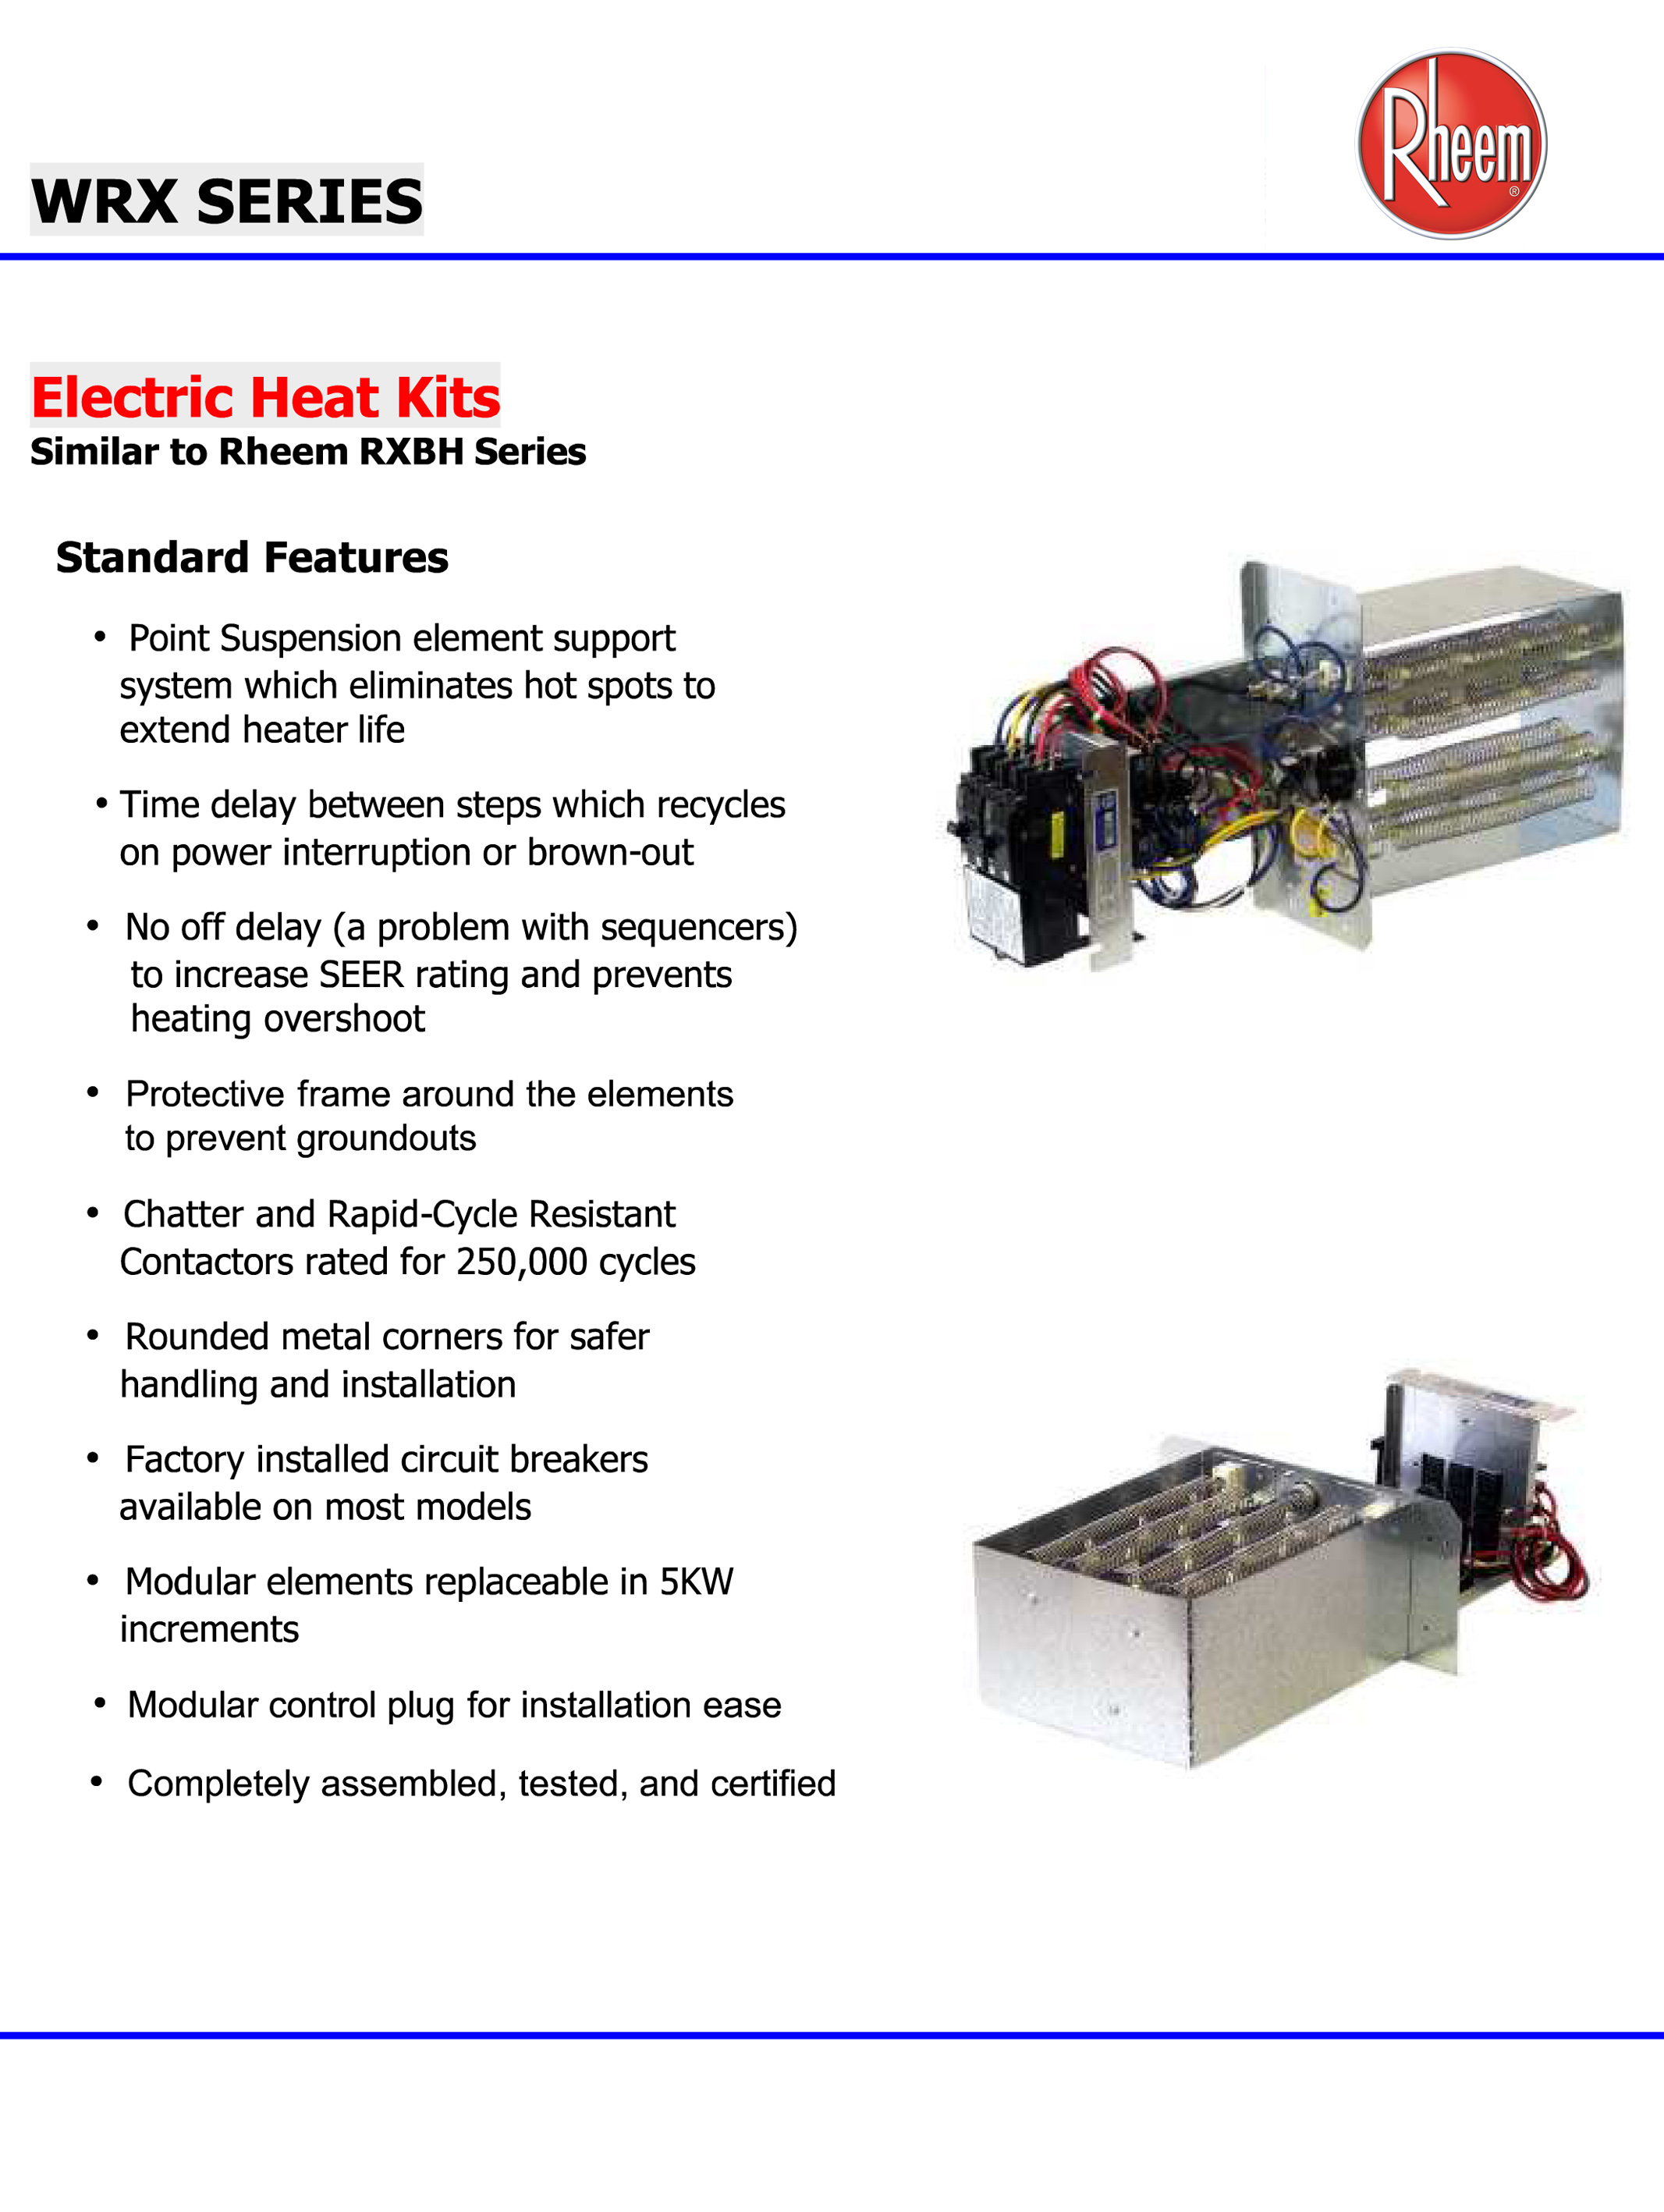 electric heat strip kit wiring diagram wiring diagram blog electric heat strip kit wiring diagram emergency pump 3 ton goodman heat strip wire diagram